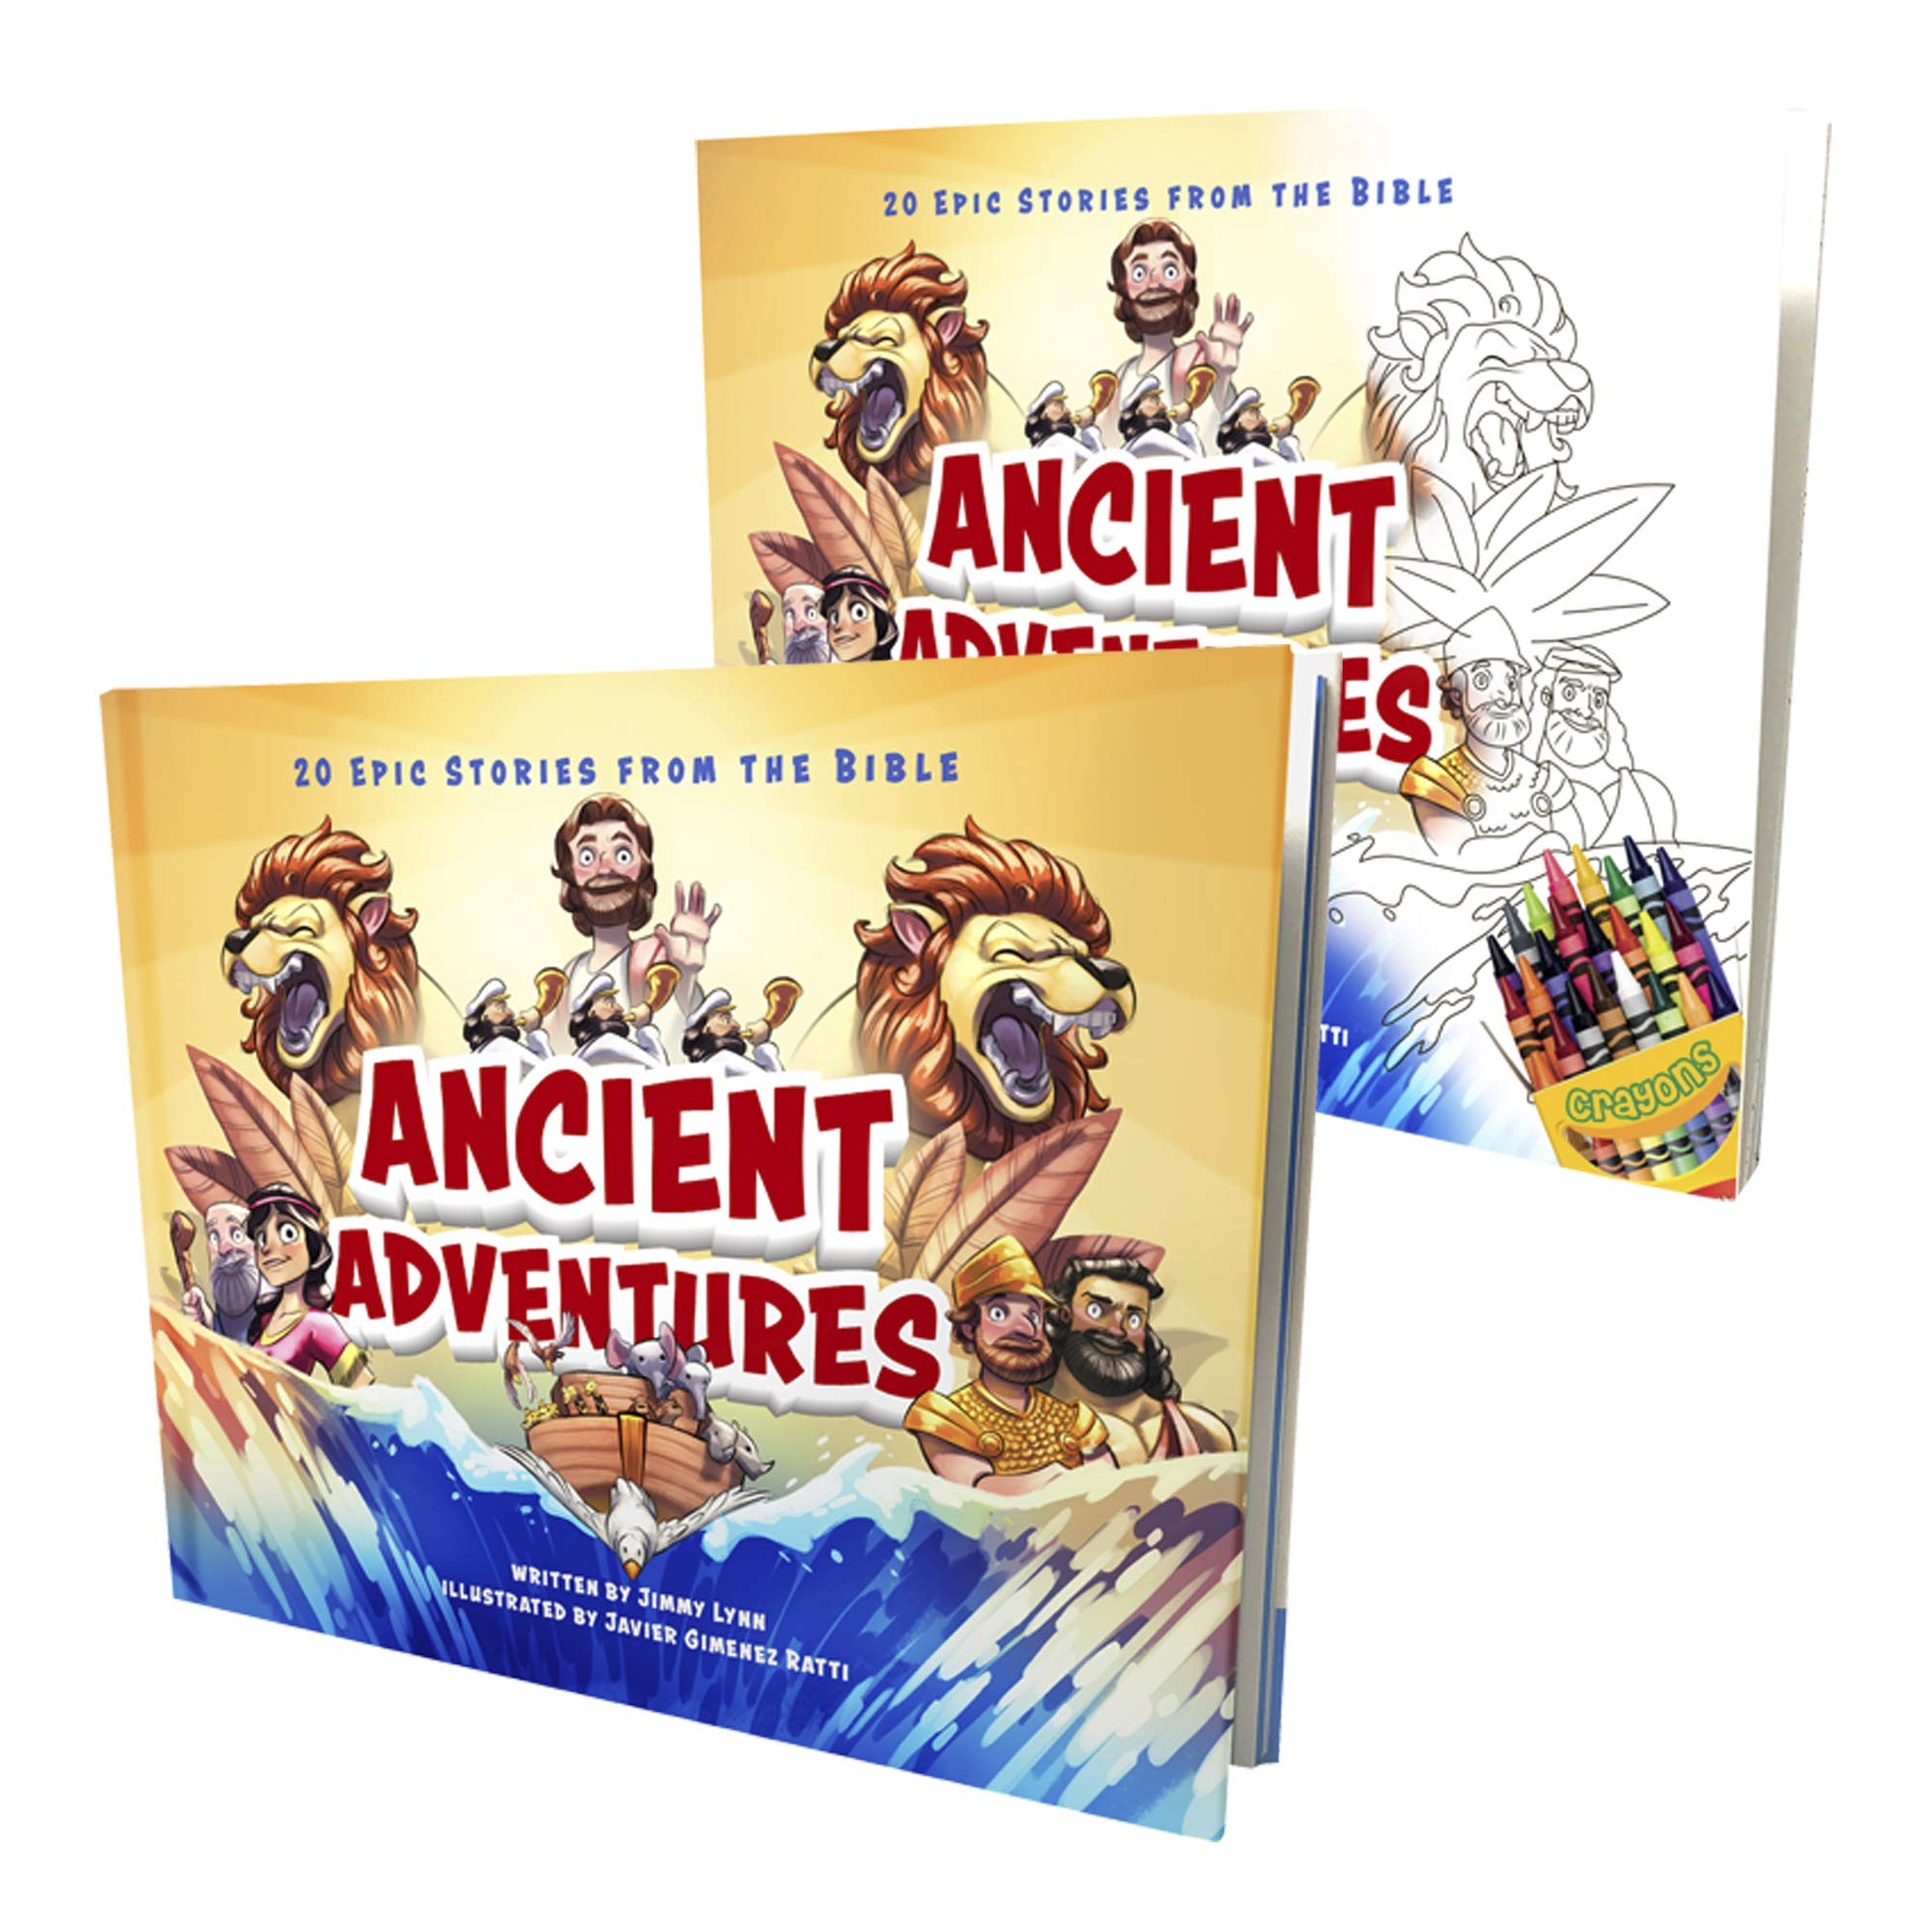 Ancient Adventures: 20 Epic Stories from The Bible + Coloring Book Edition for Kids - Children's Beginner's Bible & Storybook Fun Way to Bring Color to God's Message